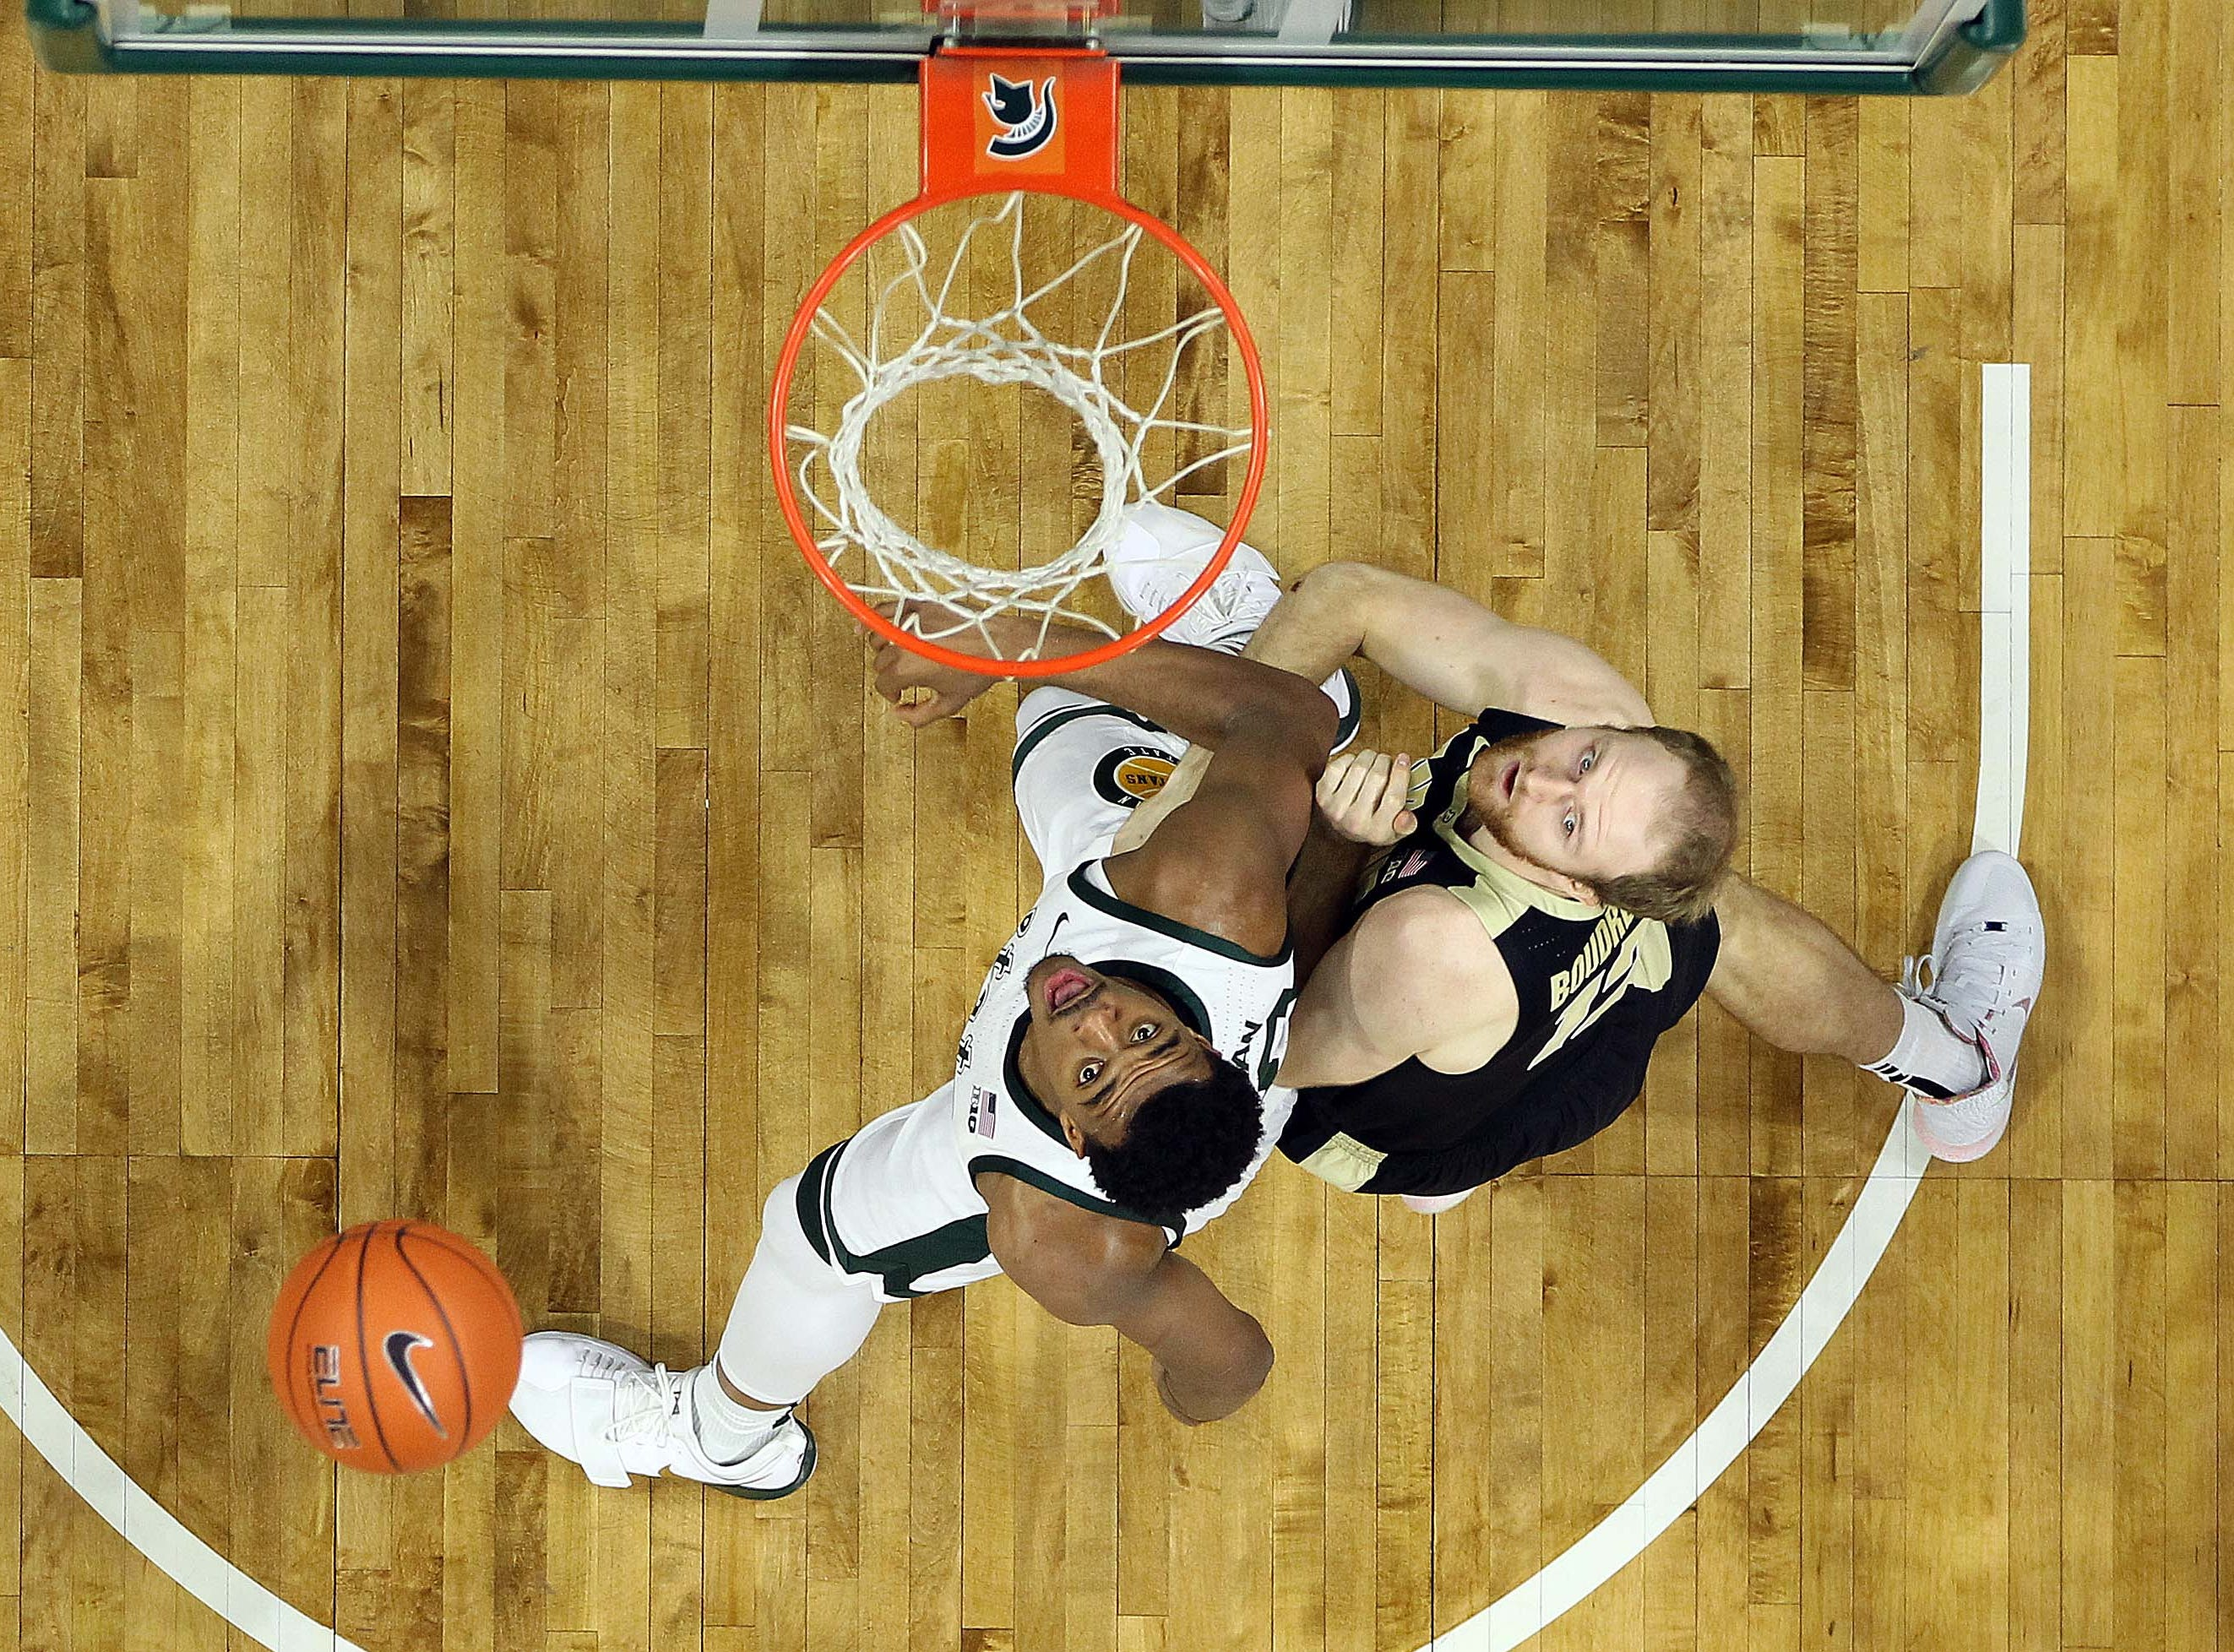 Jan 8, 2019; East Lansing, MI, USA; Michigan State Spartans forward Xavier Tillman (23) and Purdue Boilermakers forward Grady Eifert (24) fight for position during the first half of a game at the Breslin Center. Mandatory Credit: Mike Carter-USA TODAY Sports